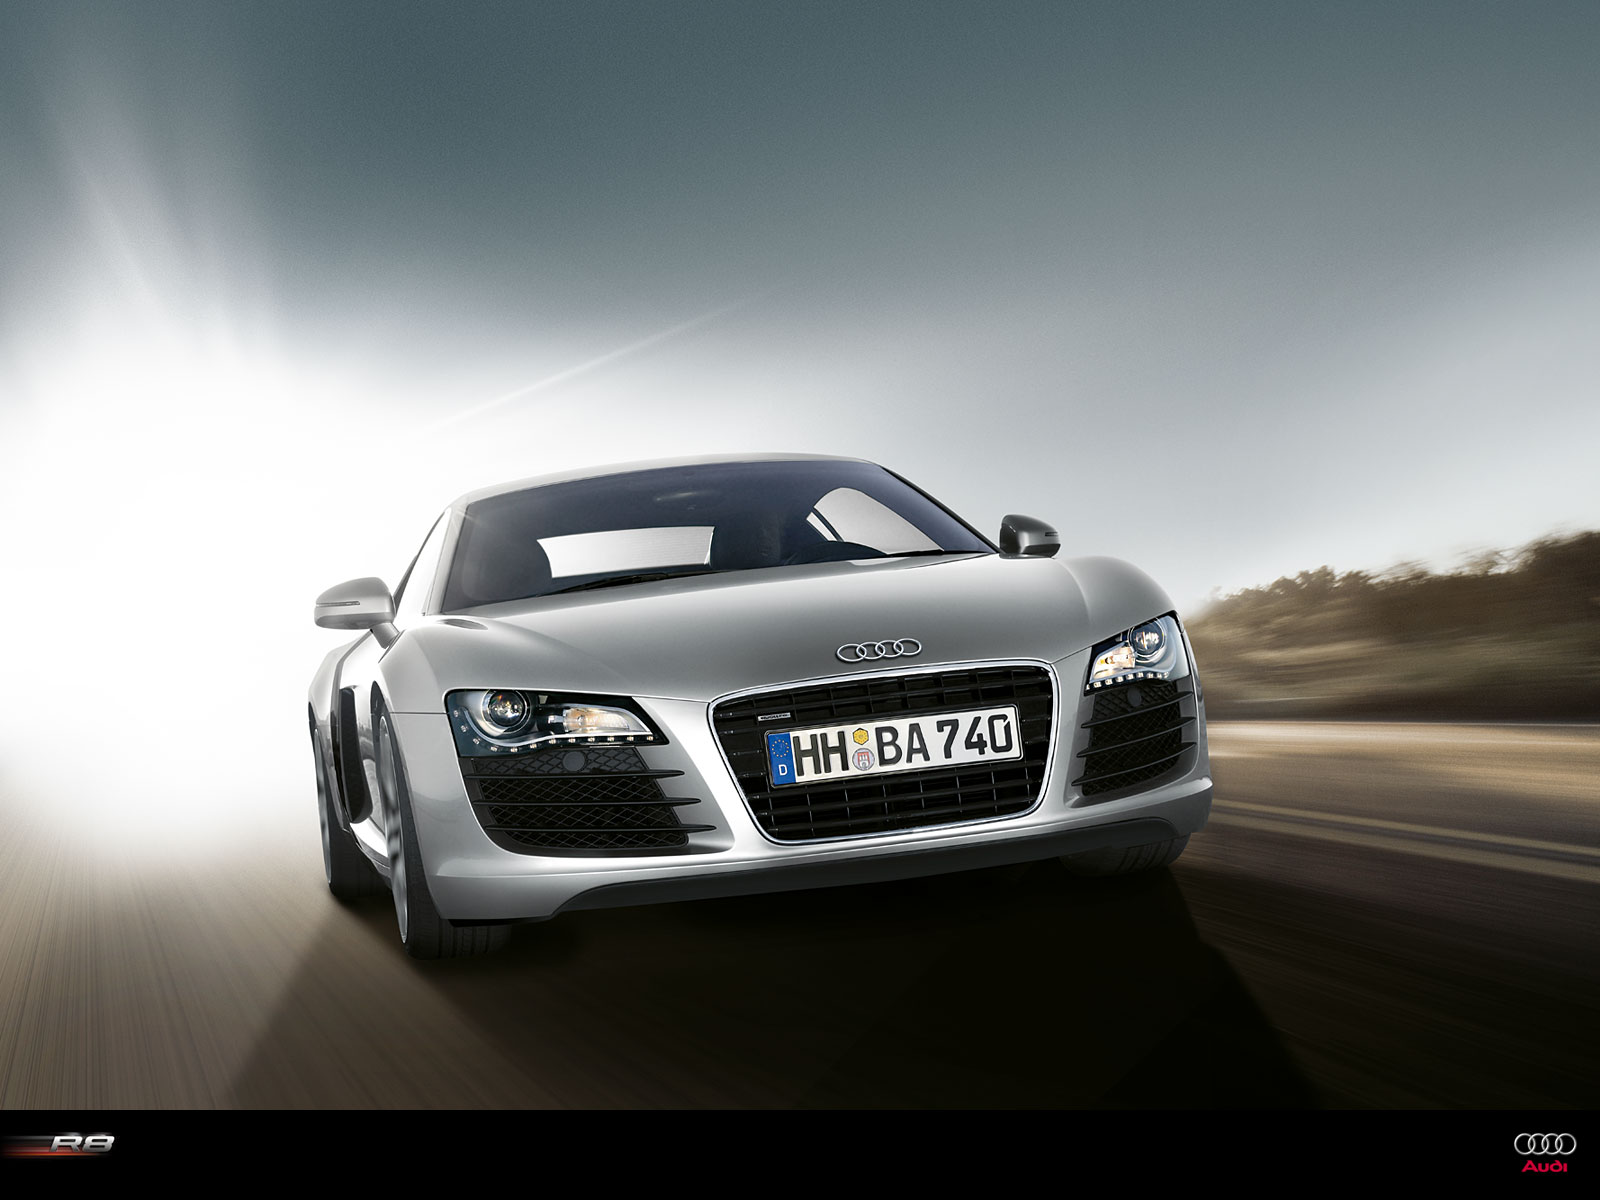 audi r8 wallpaper normal Audi r8 wallpaper download